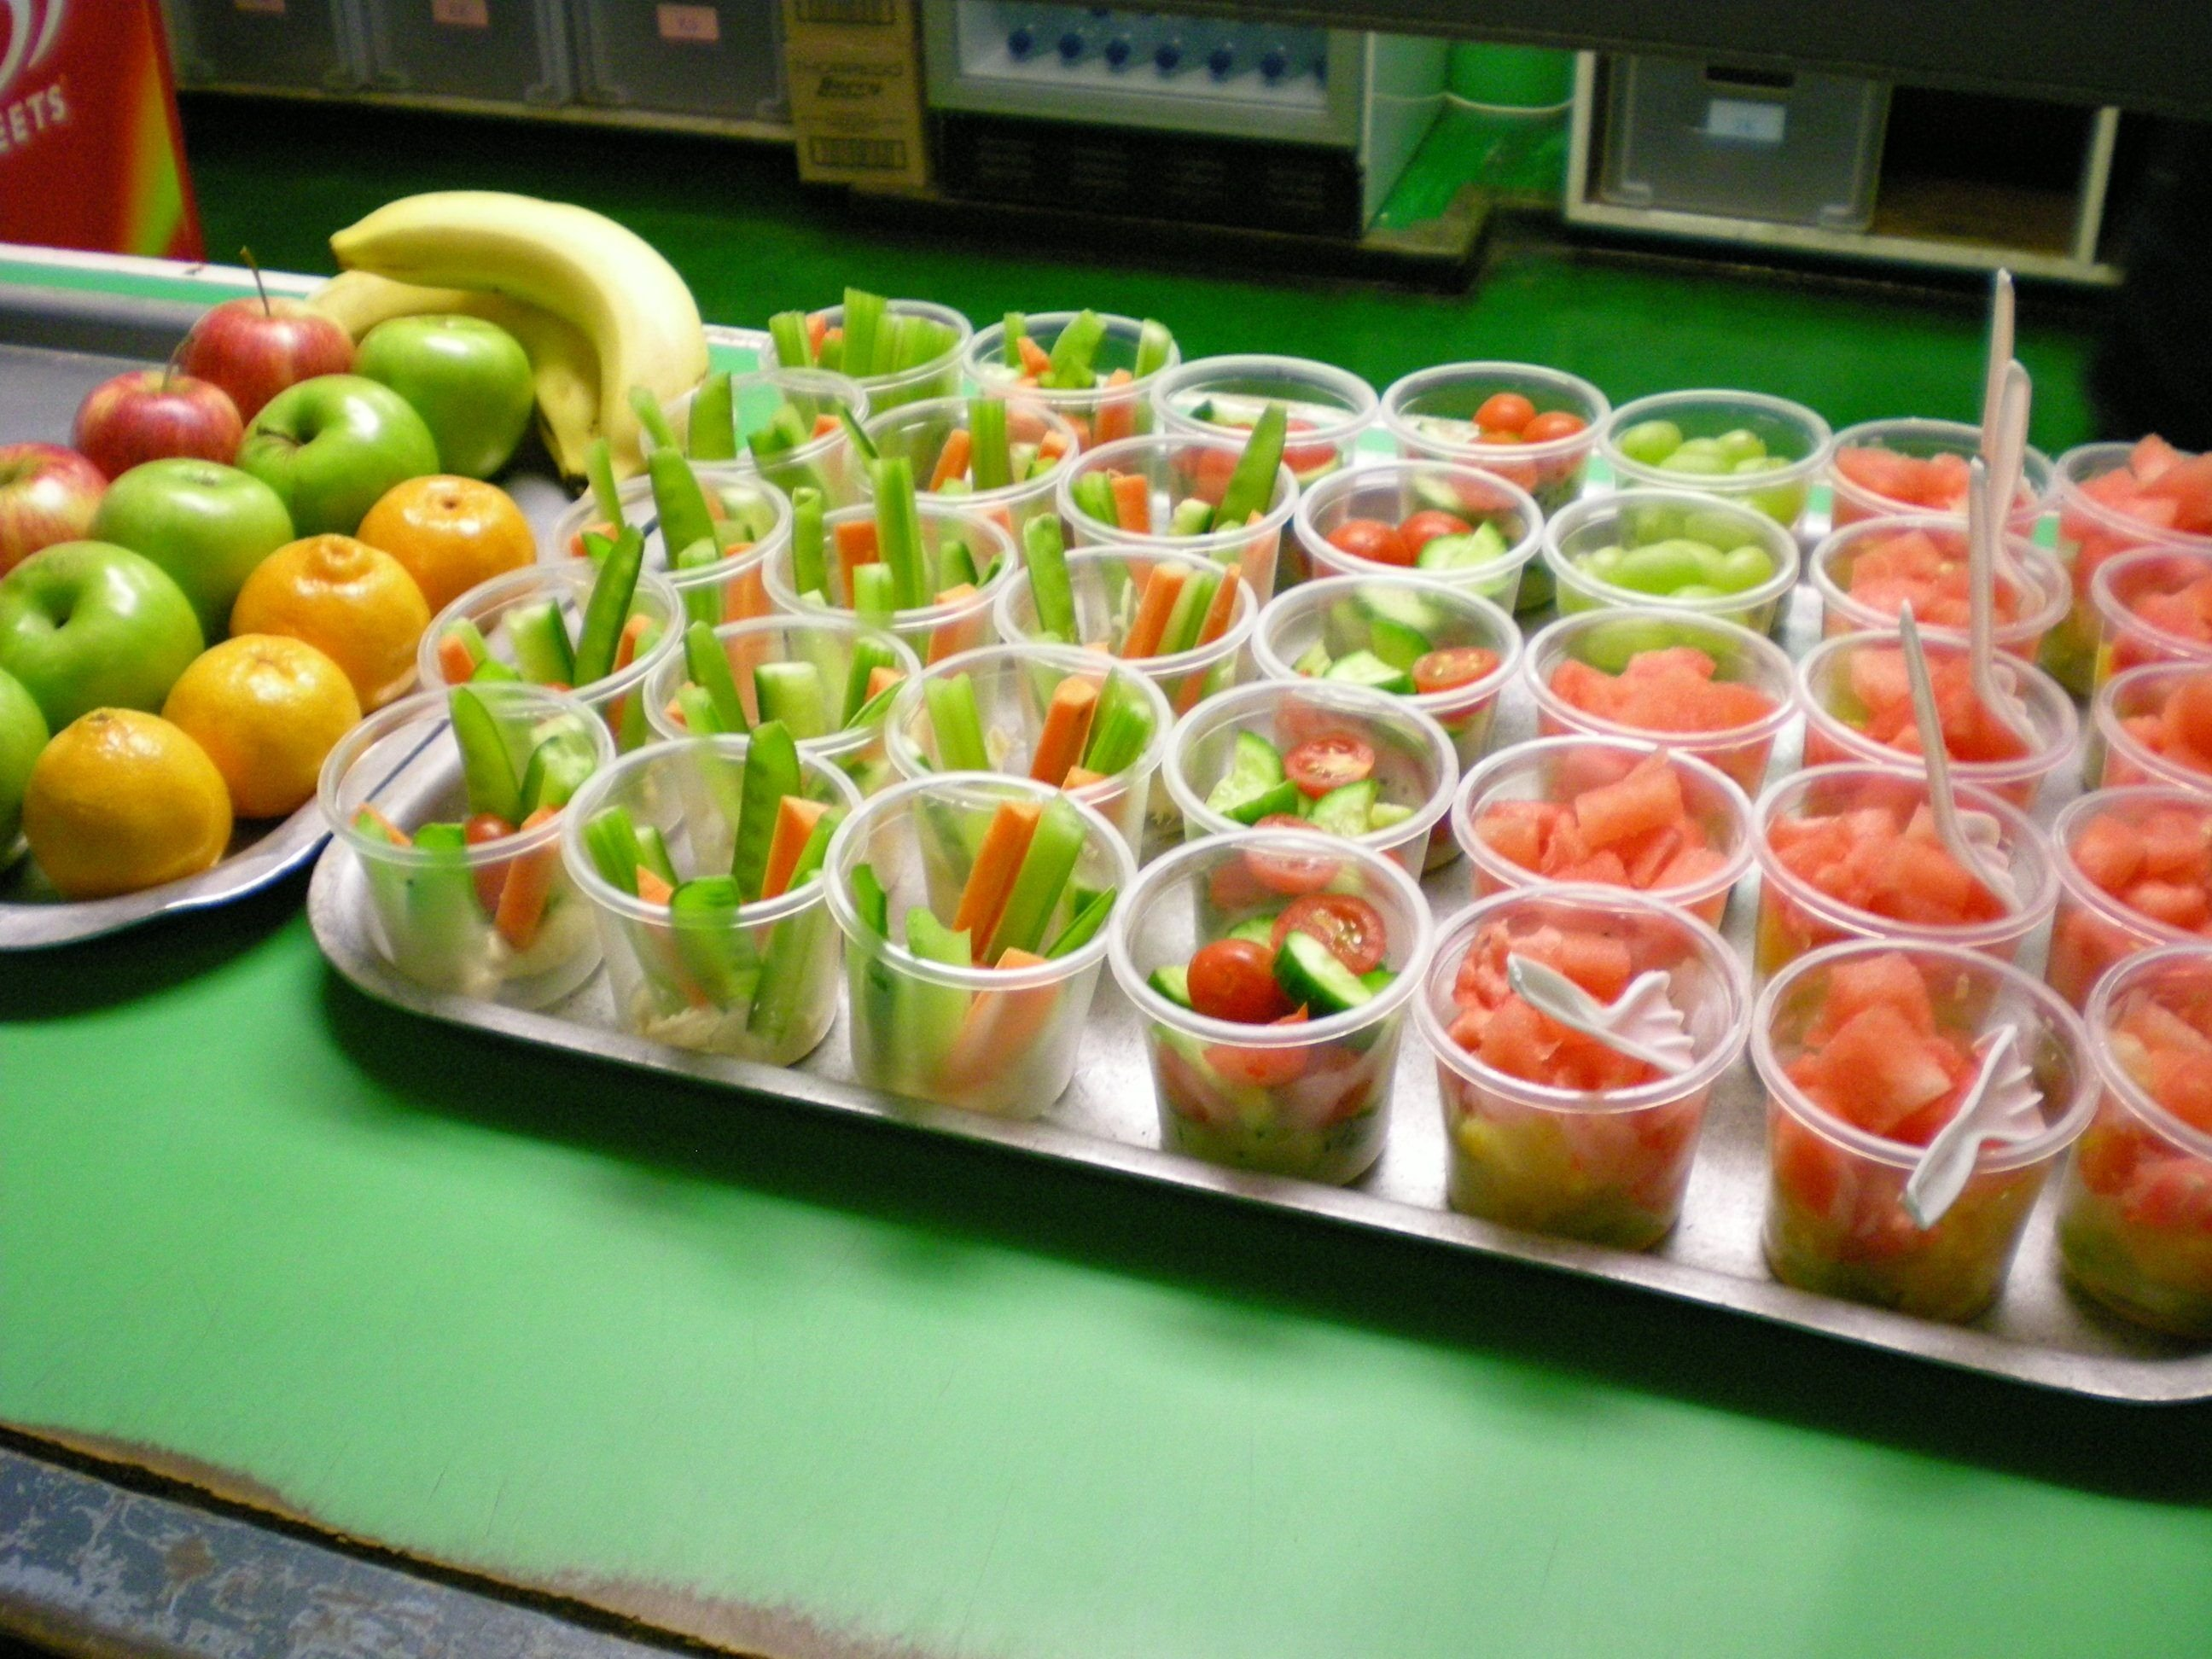 10 Fabulous Healthy Snack Ideas For School a safe place for kids to eat snack at recess google search pta 2021